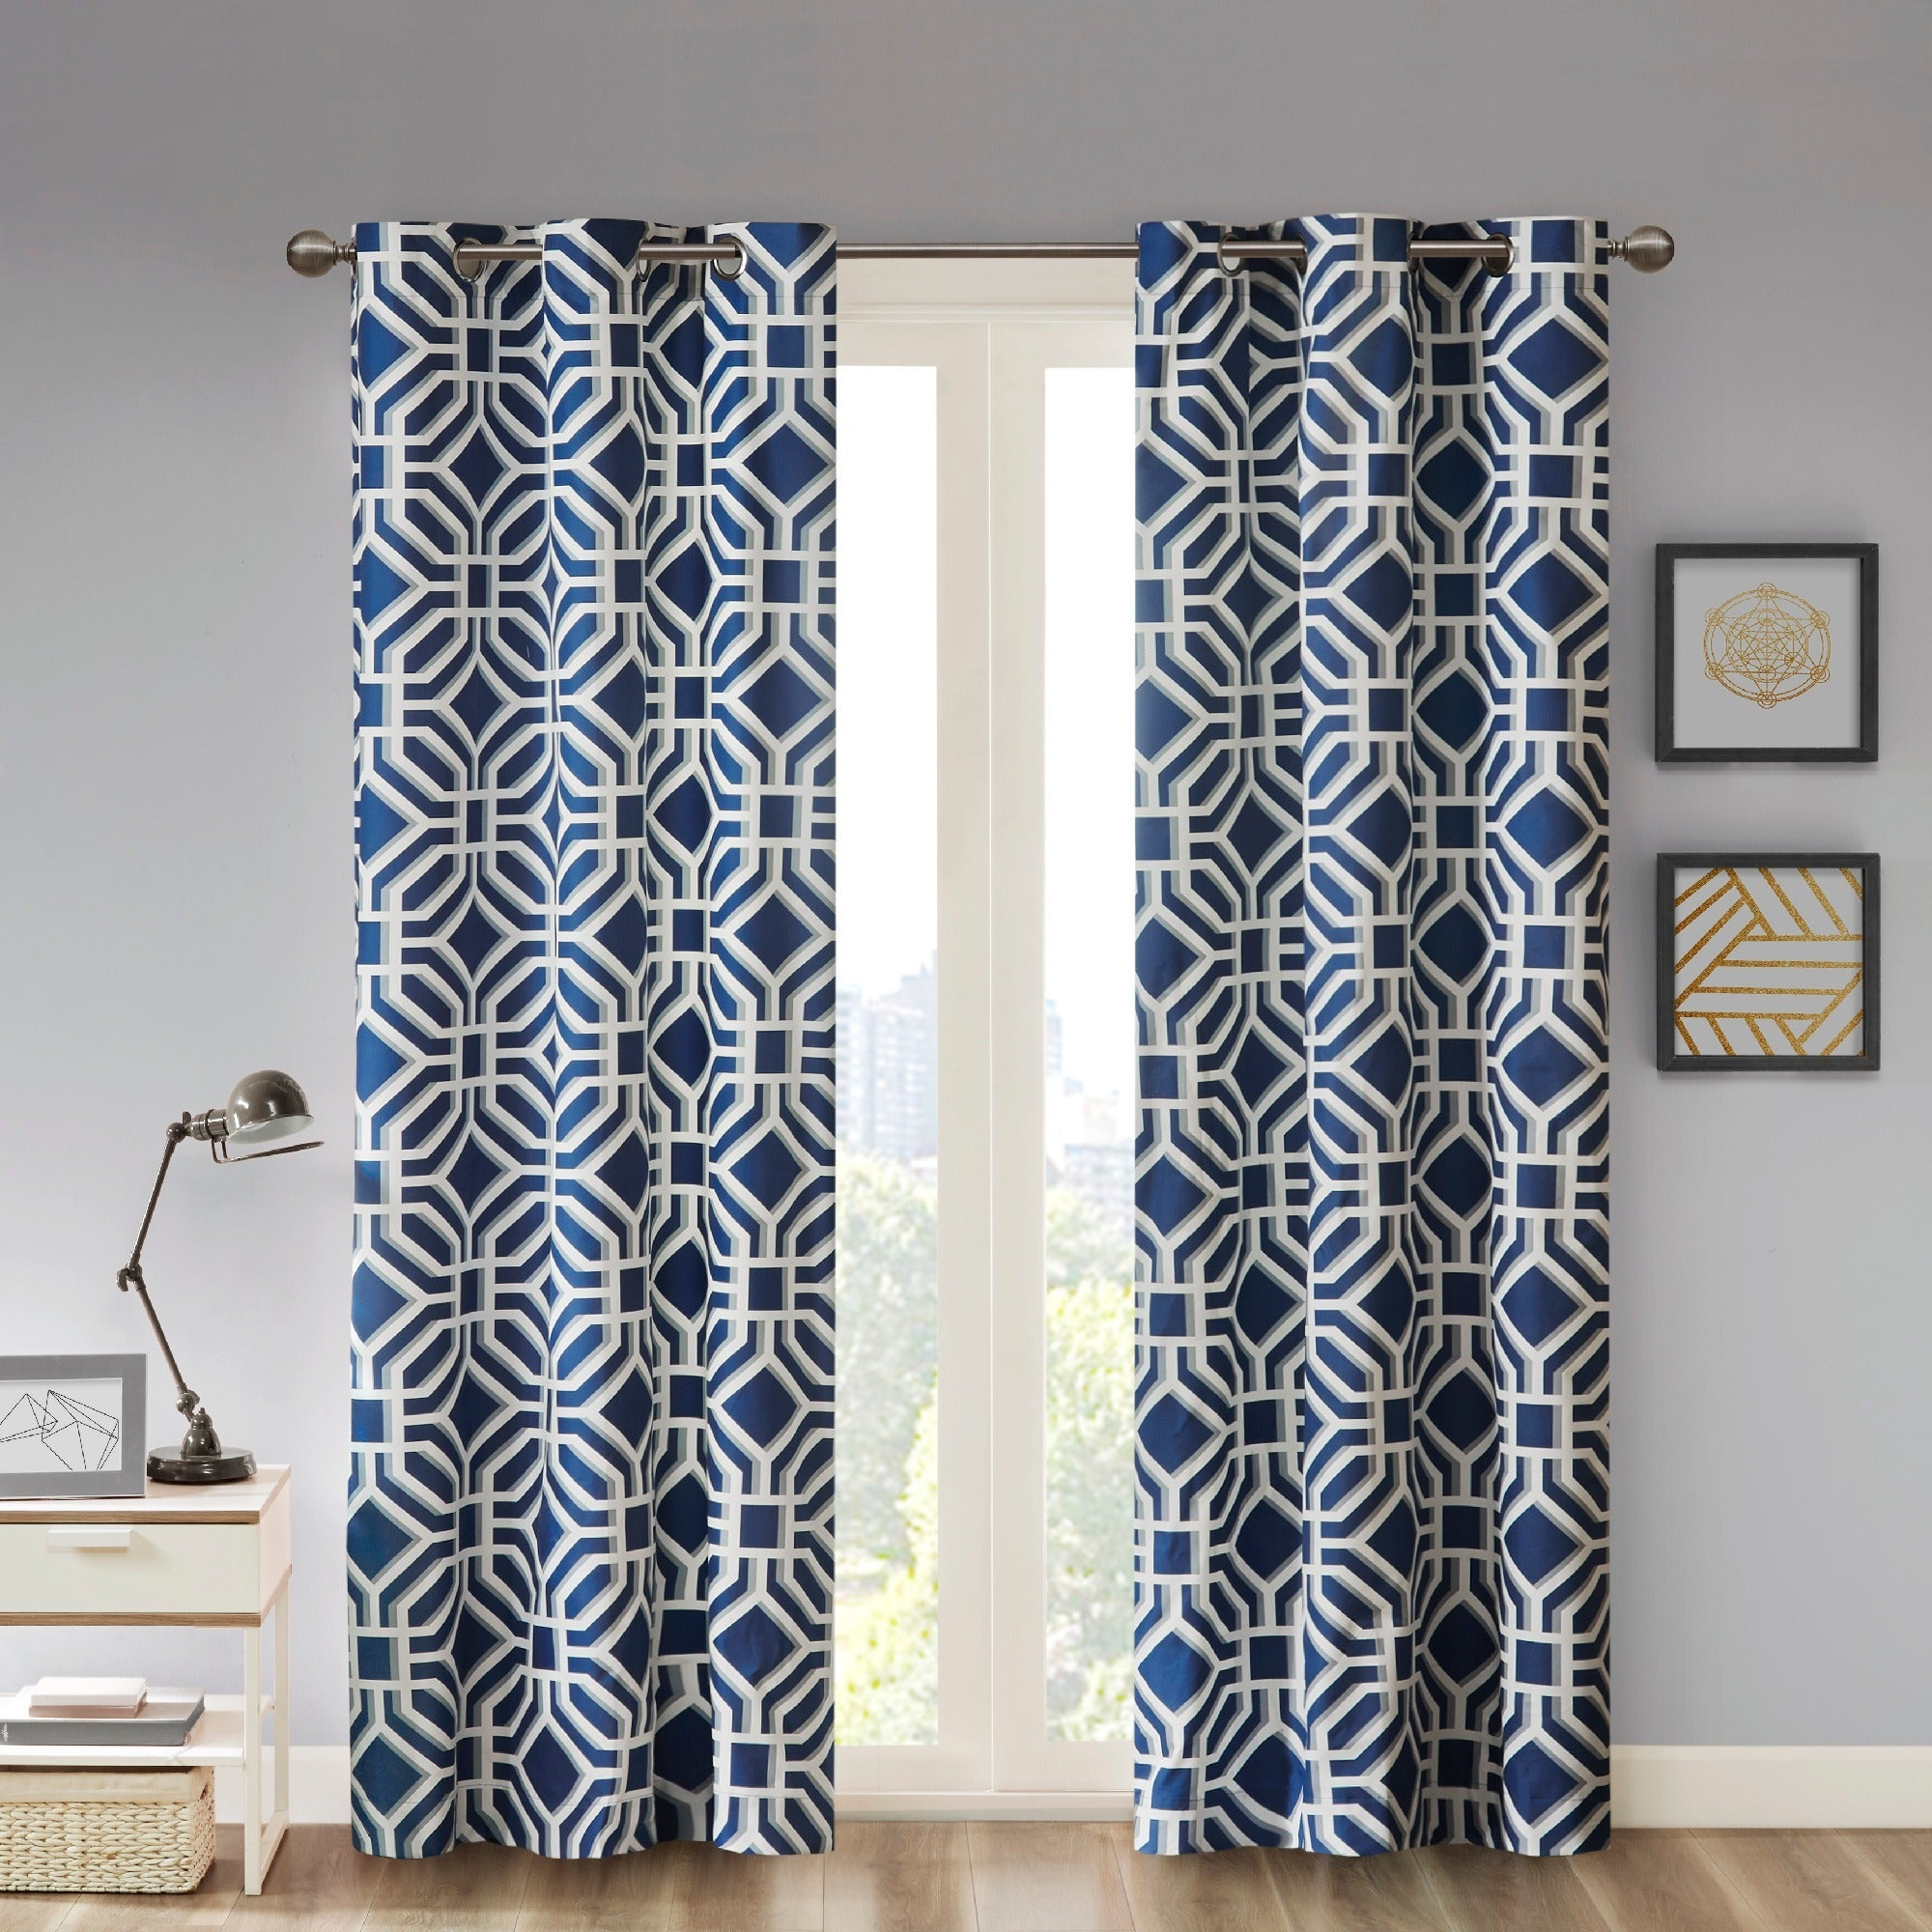 big but overstock on curtains panels style printed fit design thrills cheap therapy w max drapes under curtain apartment